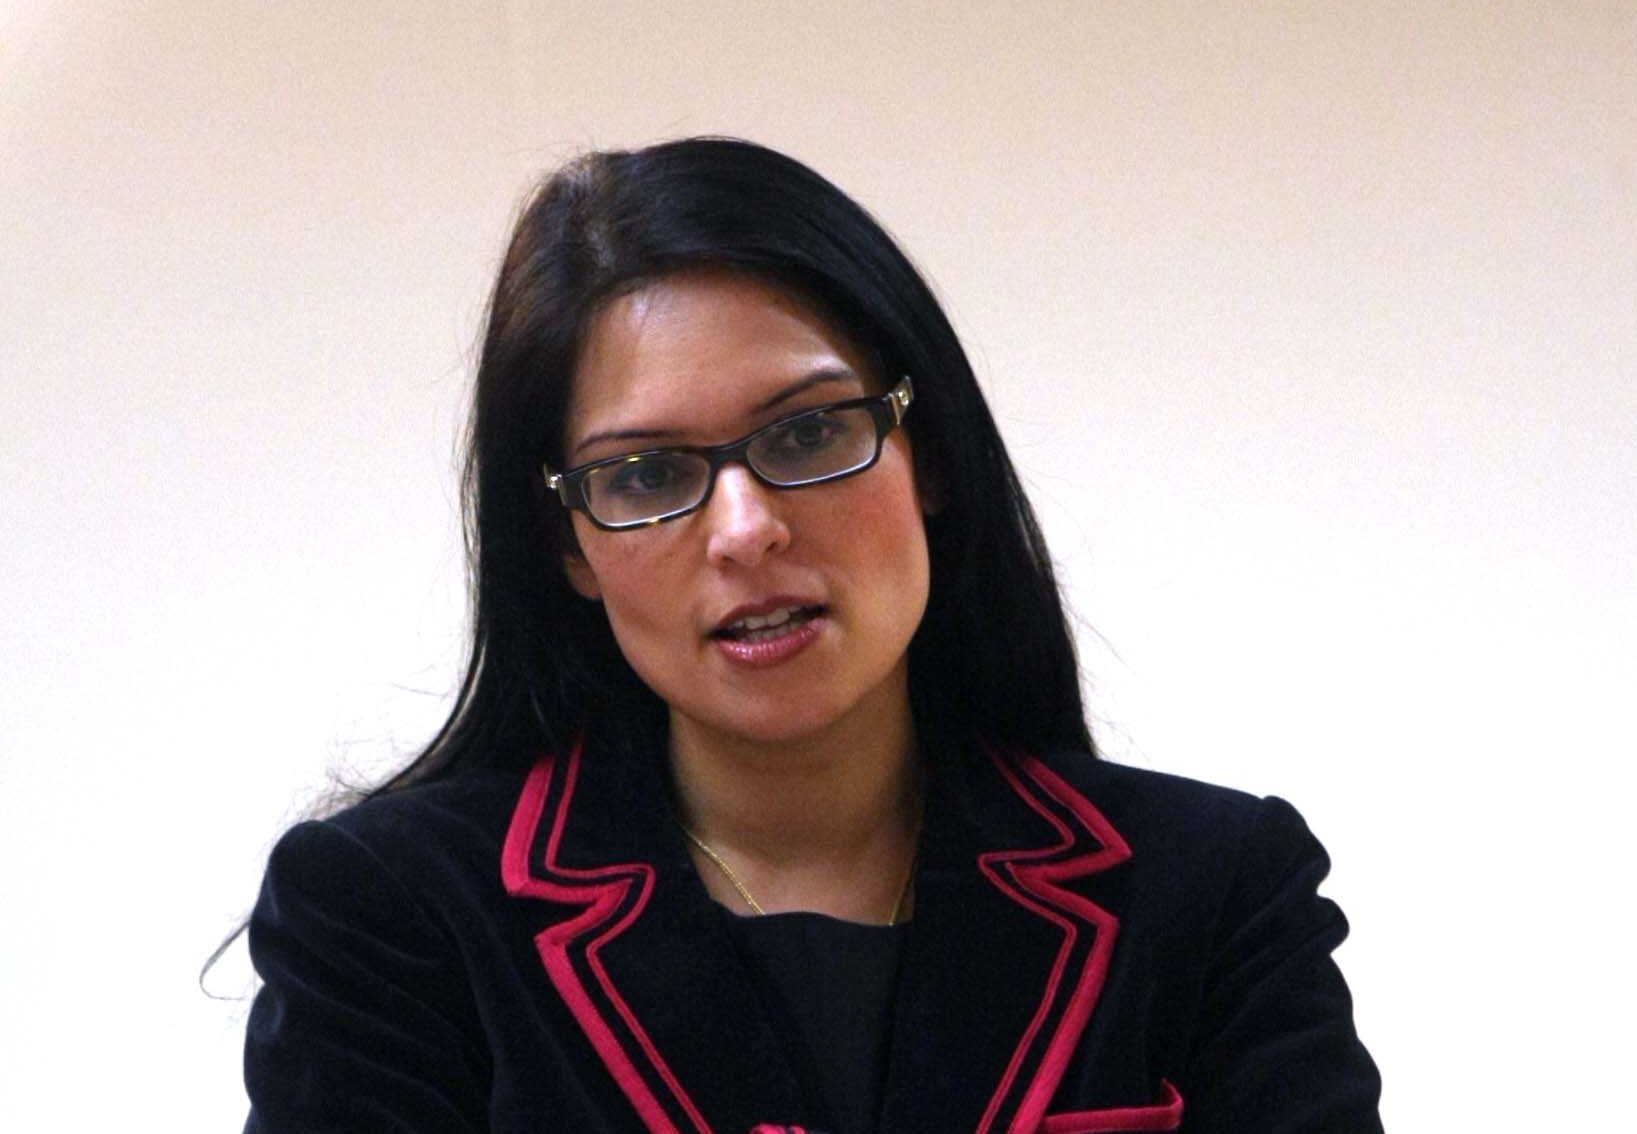 CONCERNING: MP Priti Patel has backed residents campaign to save First Essex's 72 bus